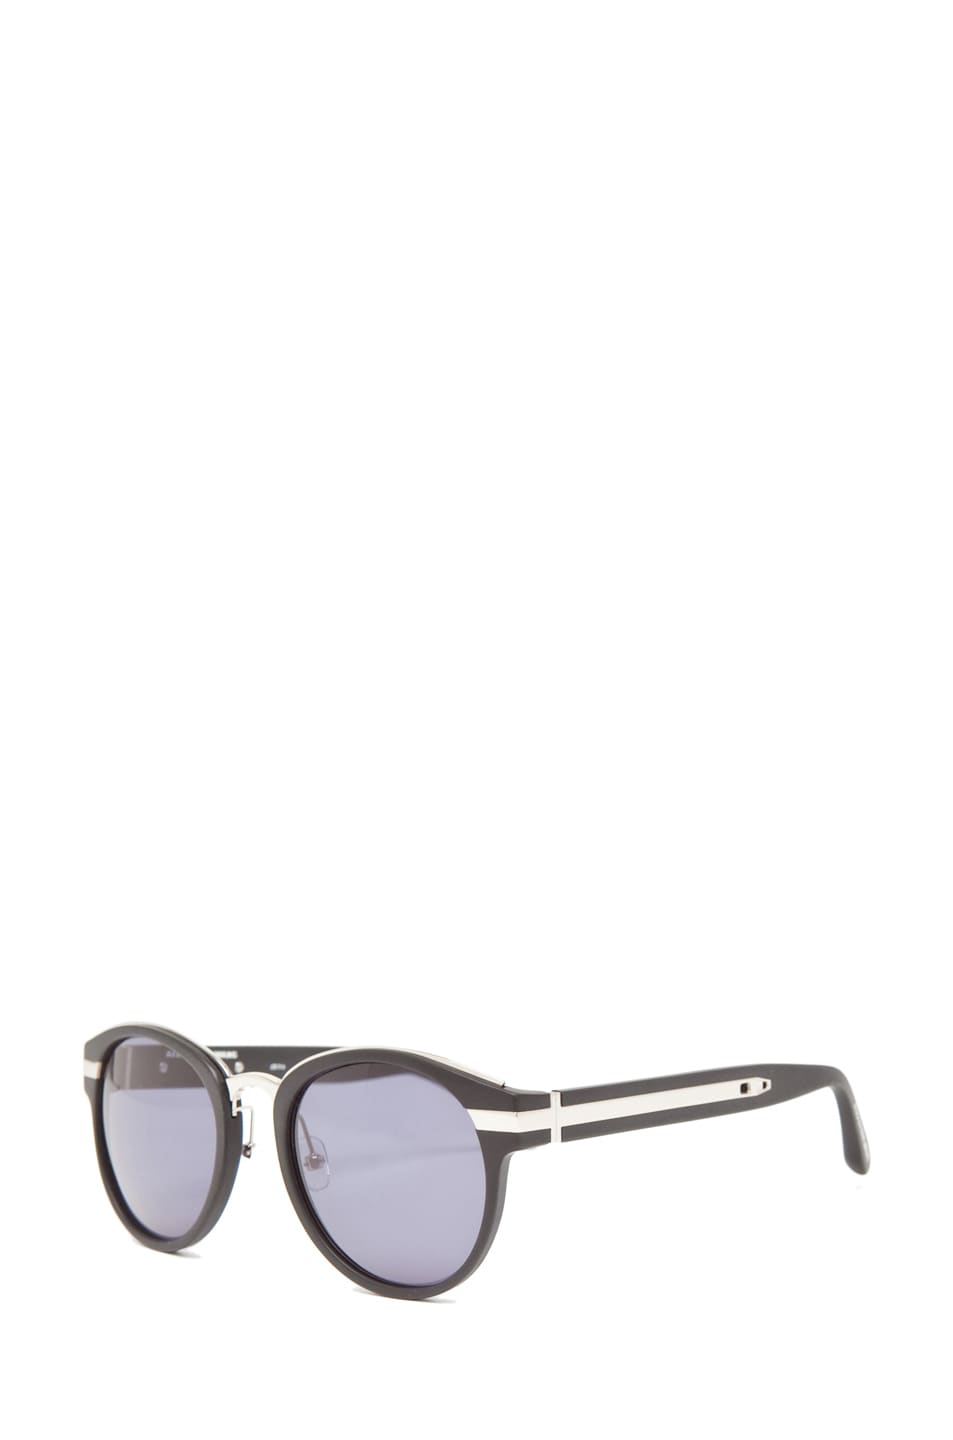 Image 2 of Alexander Wang Sunglasses in Matte Black